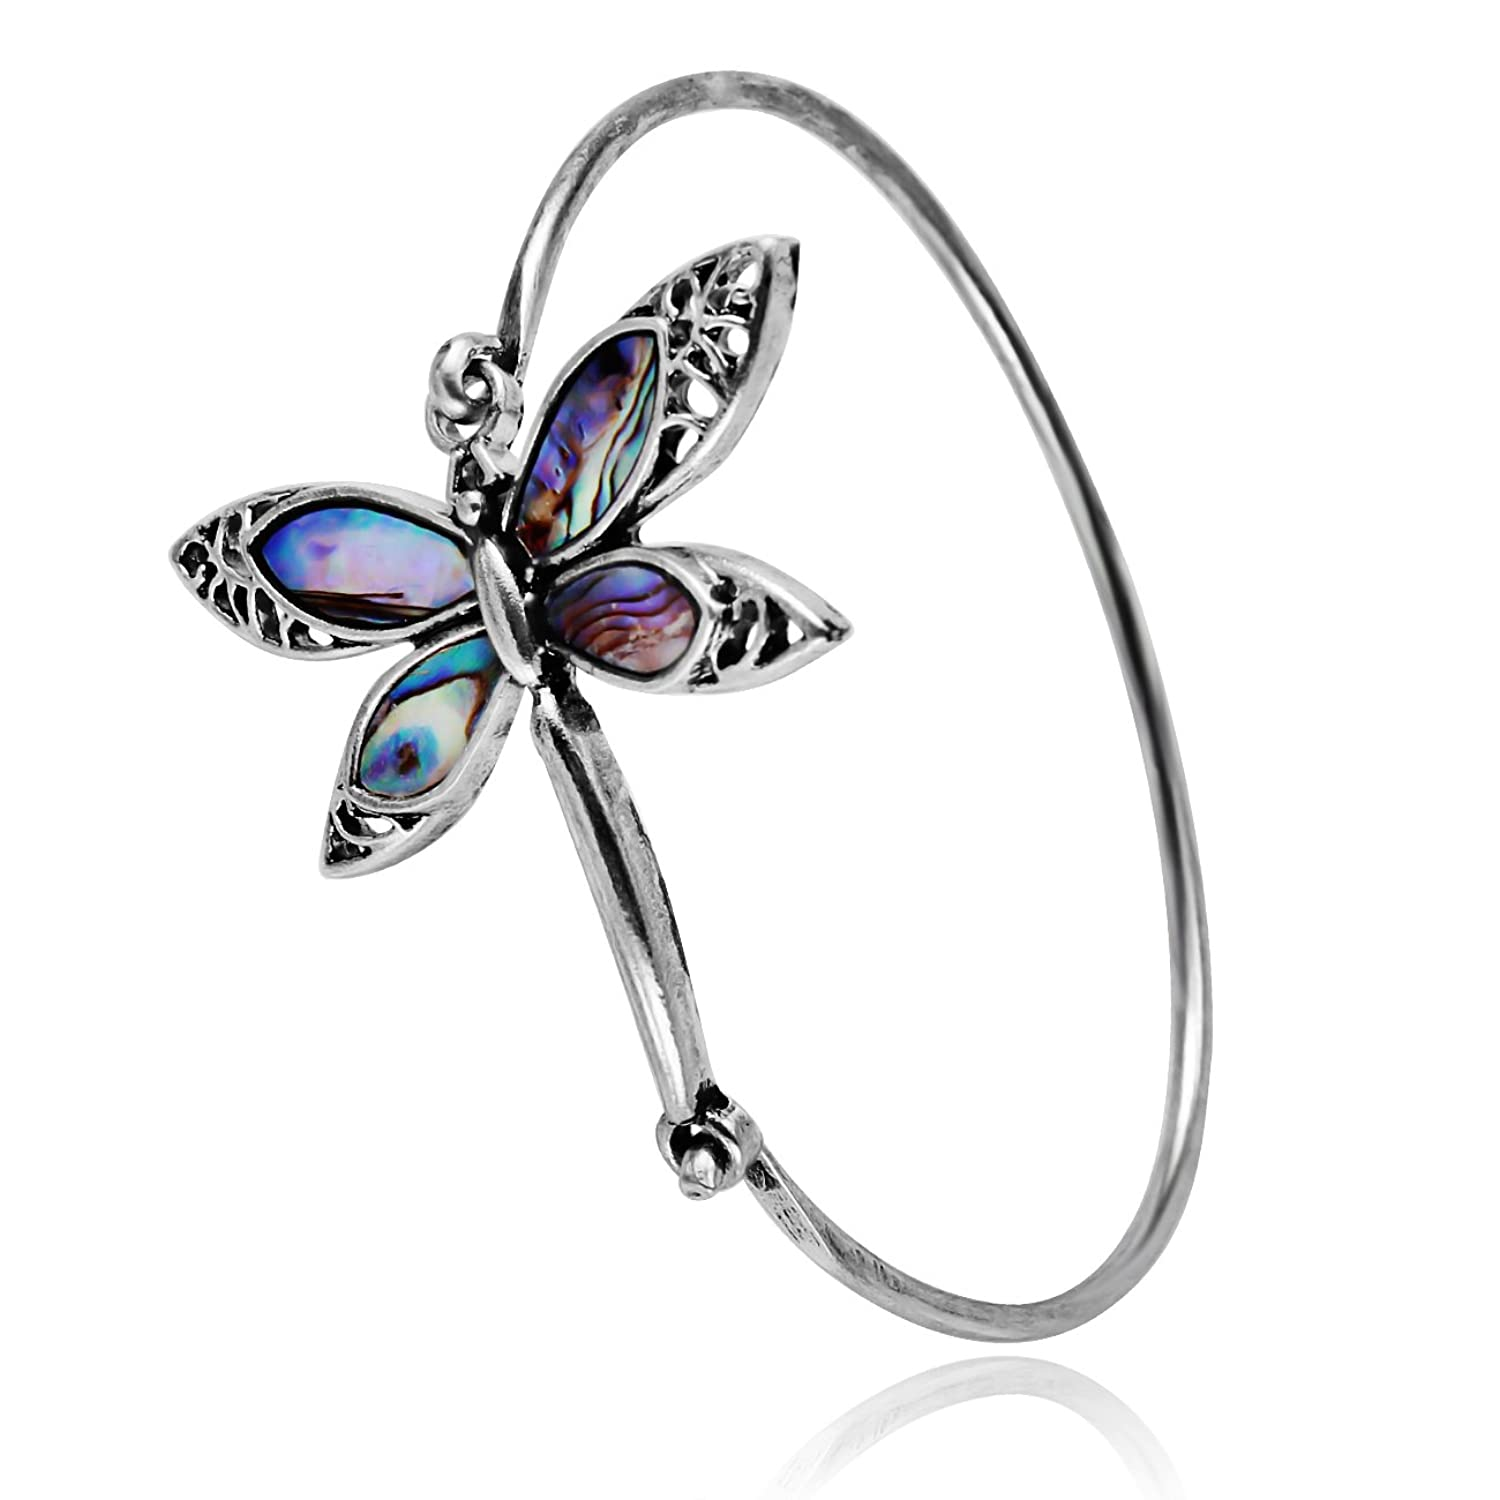 PANGRUI Exquisite Antique Silver Nature Abalone Paua Shell Dragonfly Bangle Bracelet Easy Open